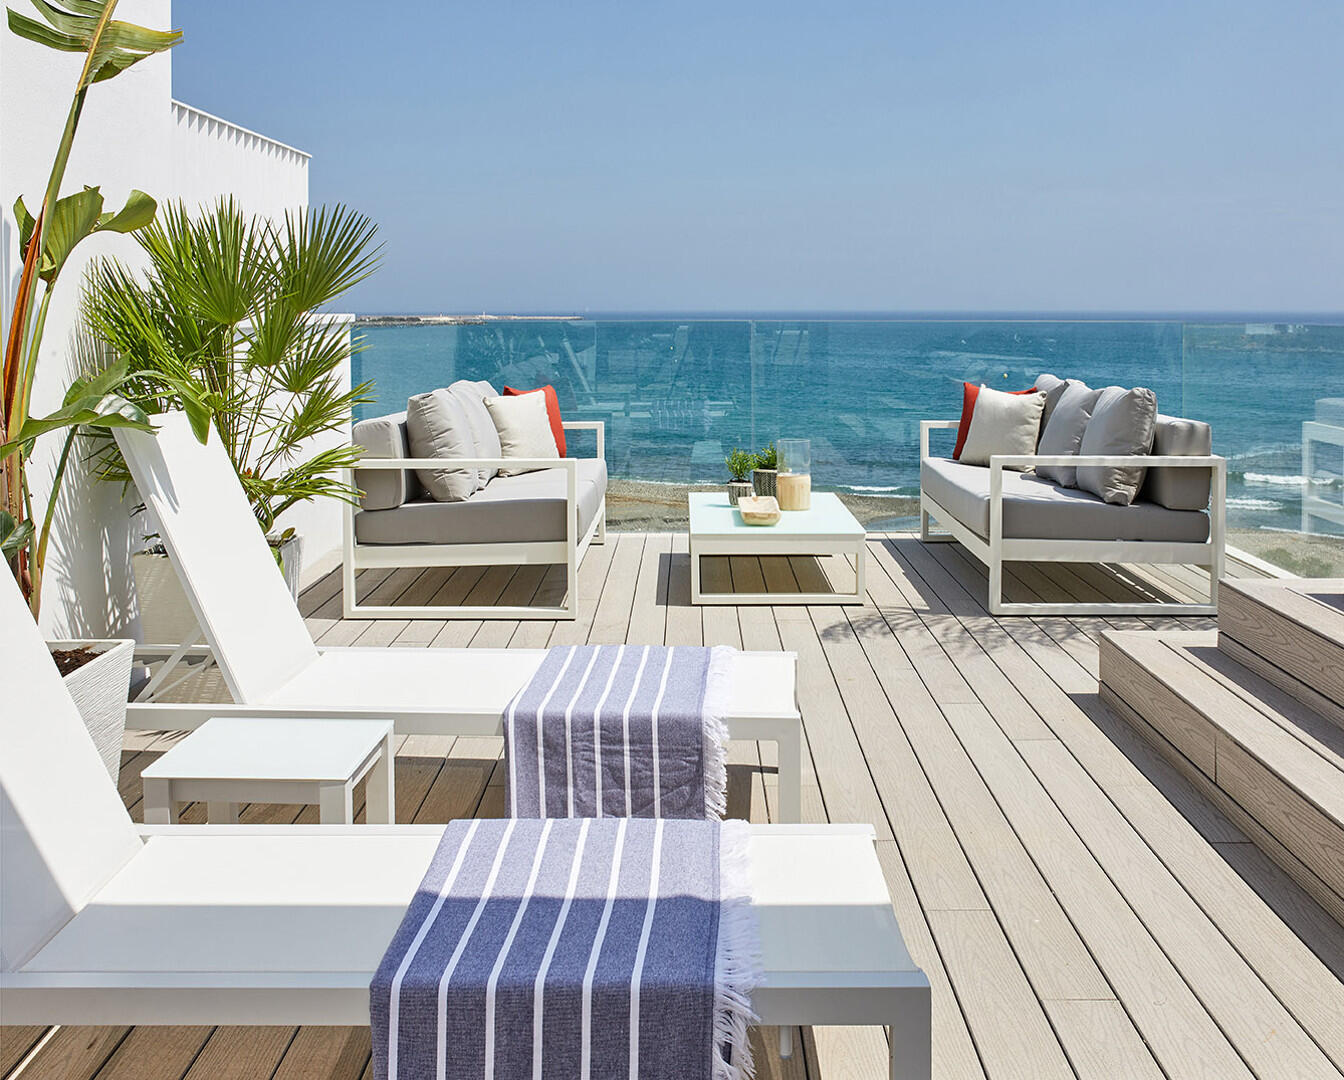 The Island Estepona beachfront townhouse luxury and at walking distance to the harbor and town centre